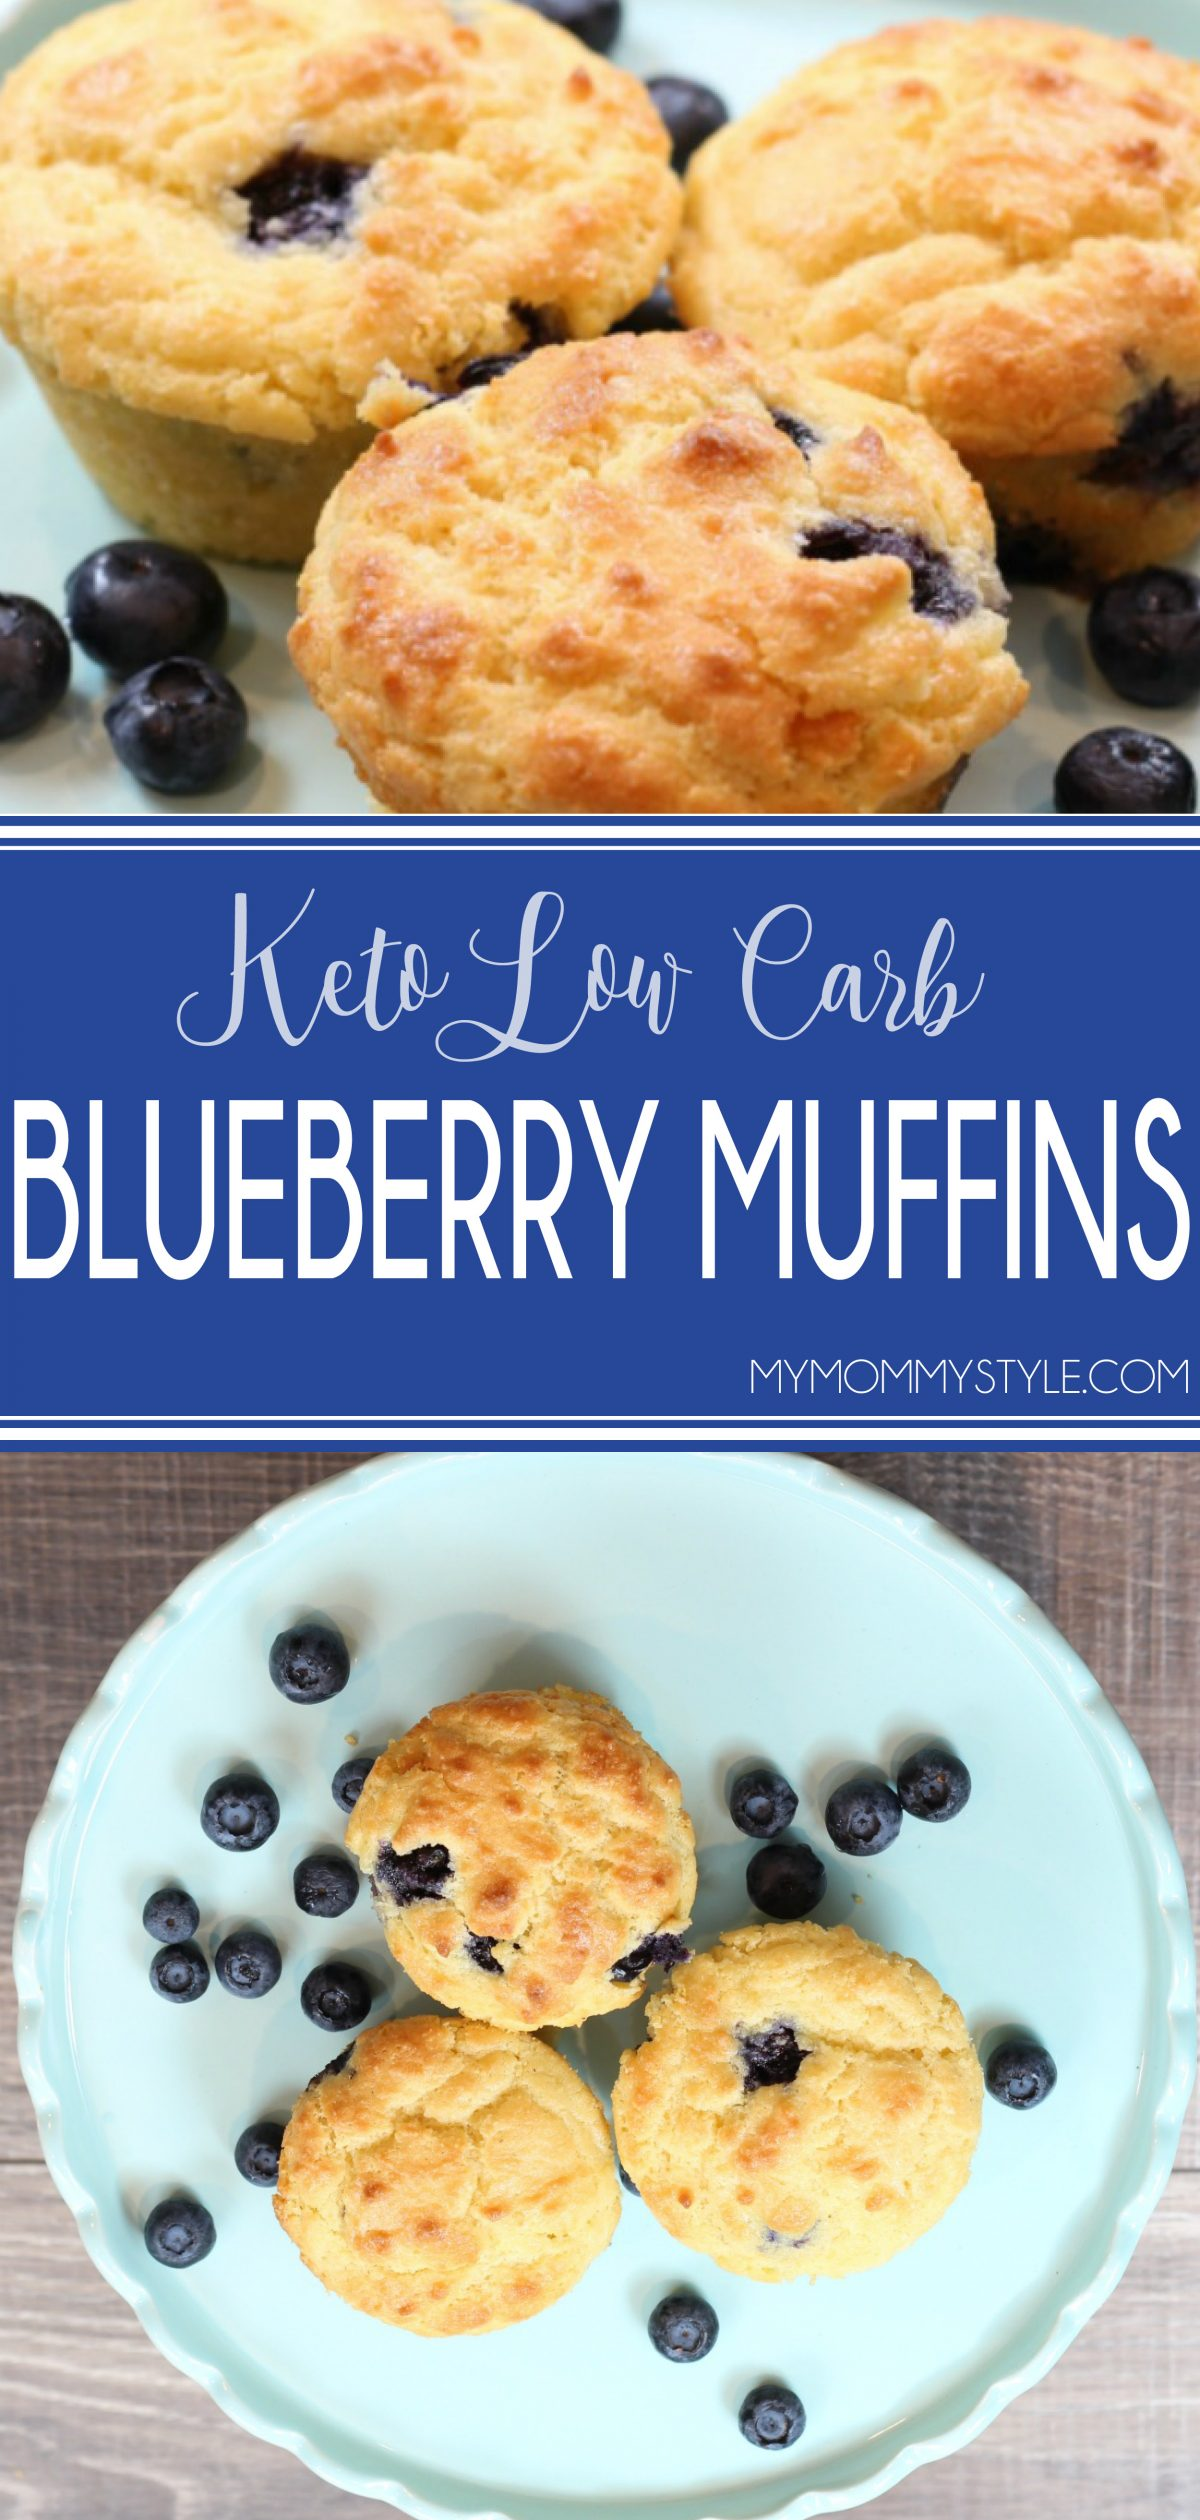 These Keto low carb blueberry muffins really hit the spot and tasted amazing. There are almost no carbs and they were fluffy and tasted so good! via @mymommystyle